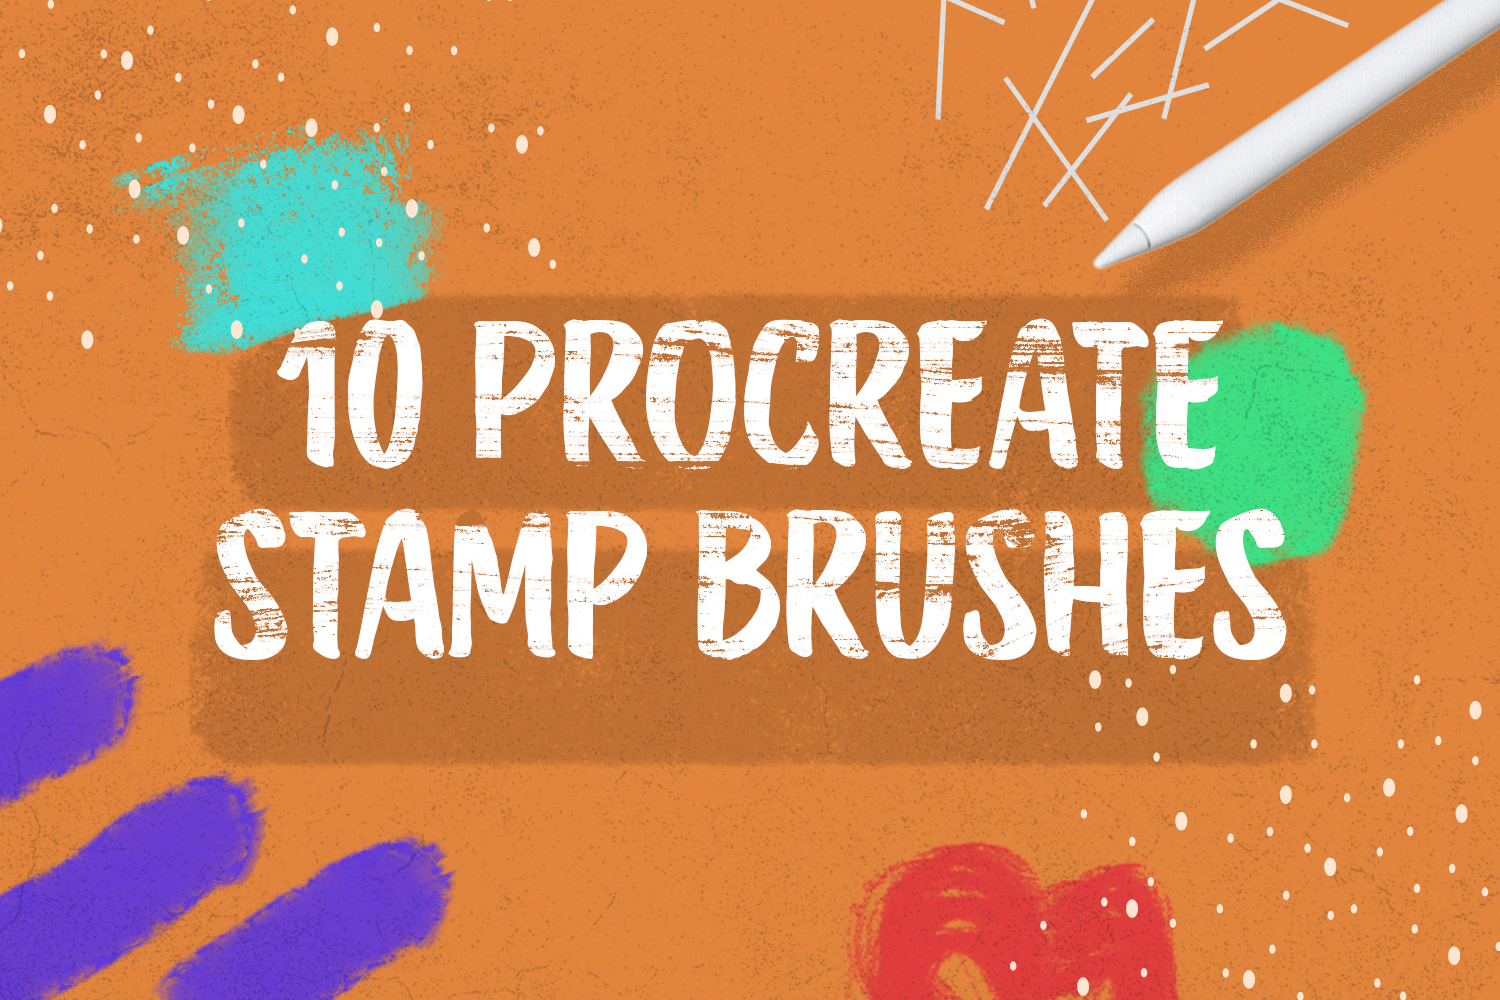 10 Procreate Stamp Brushes Preview